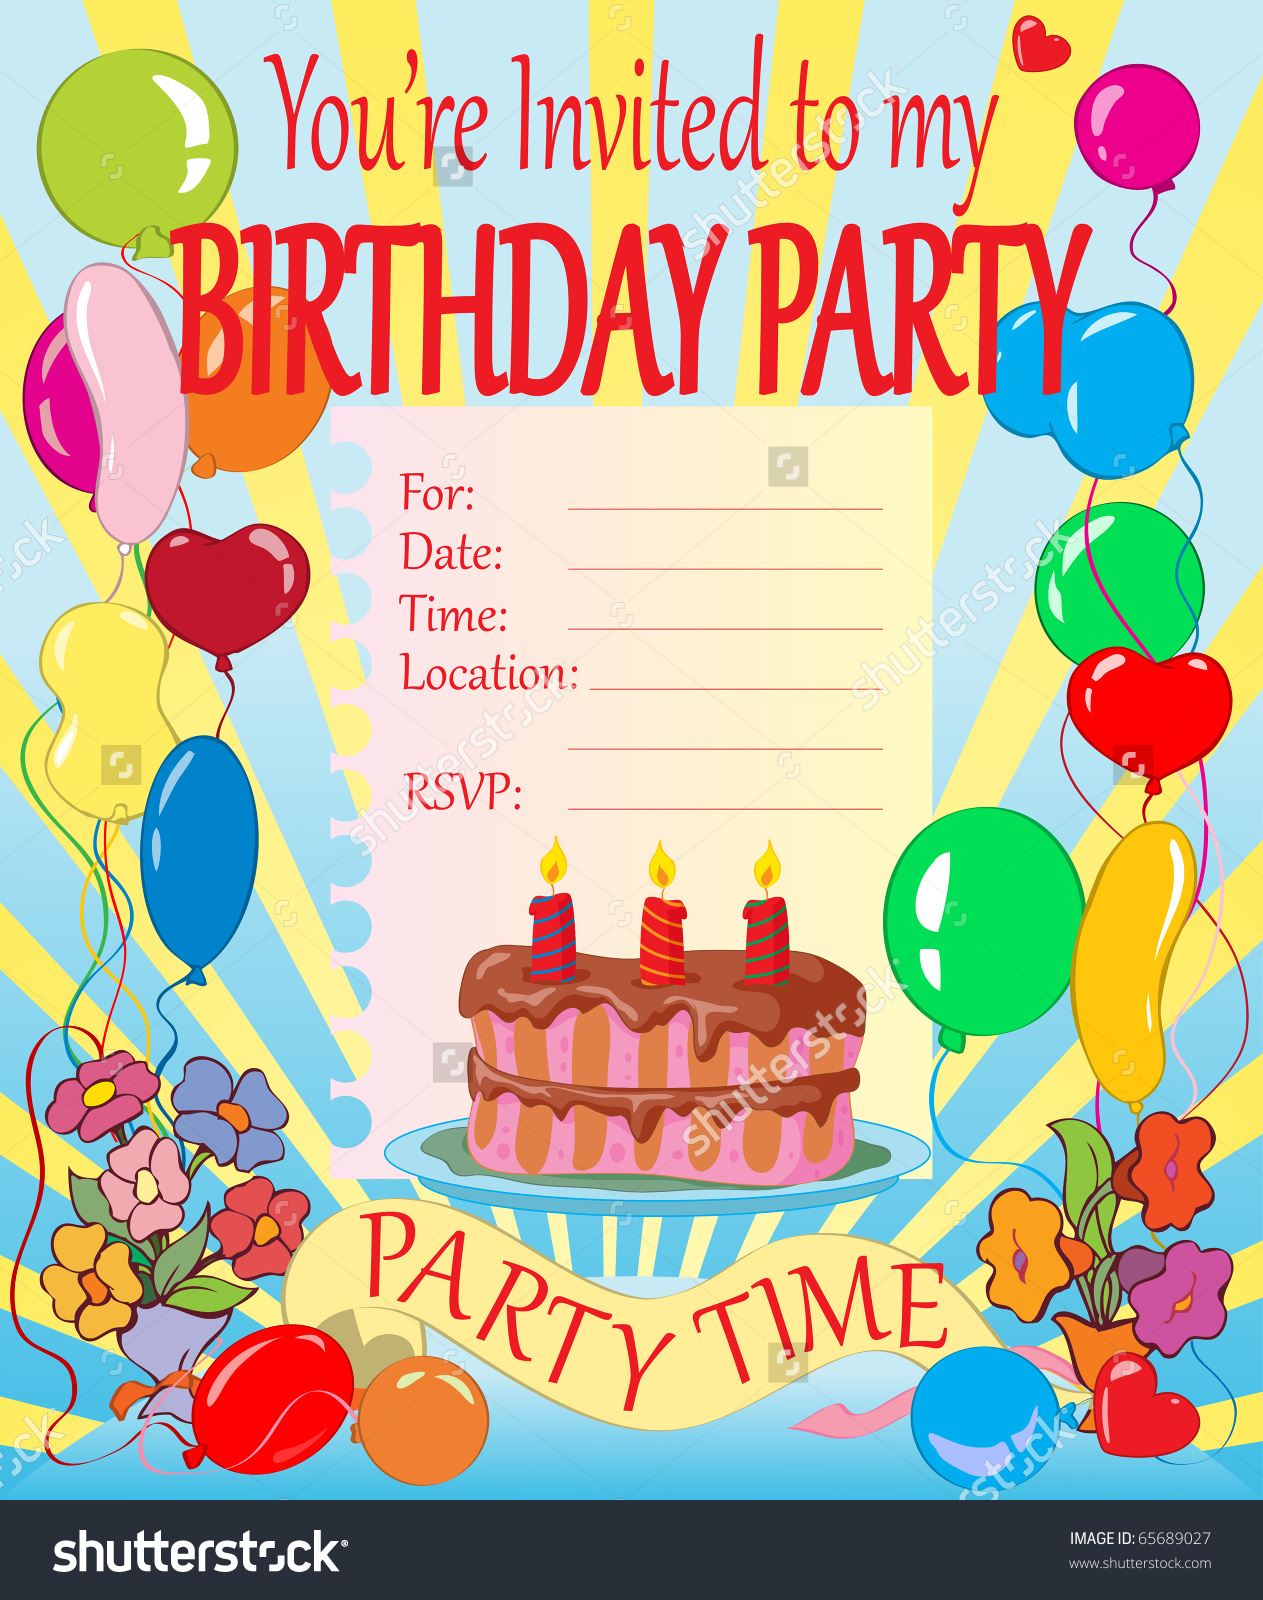 birthday theme cards ; kids-birthday-party-invitation-cards-how-to-make-your-own-Birthday-invitations-using-word-3